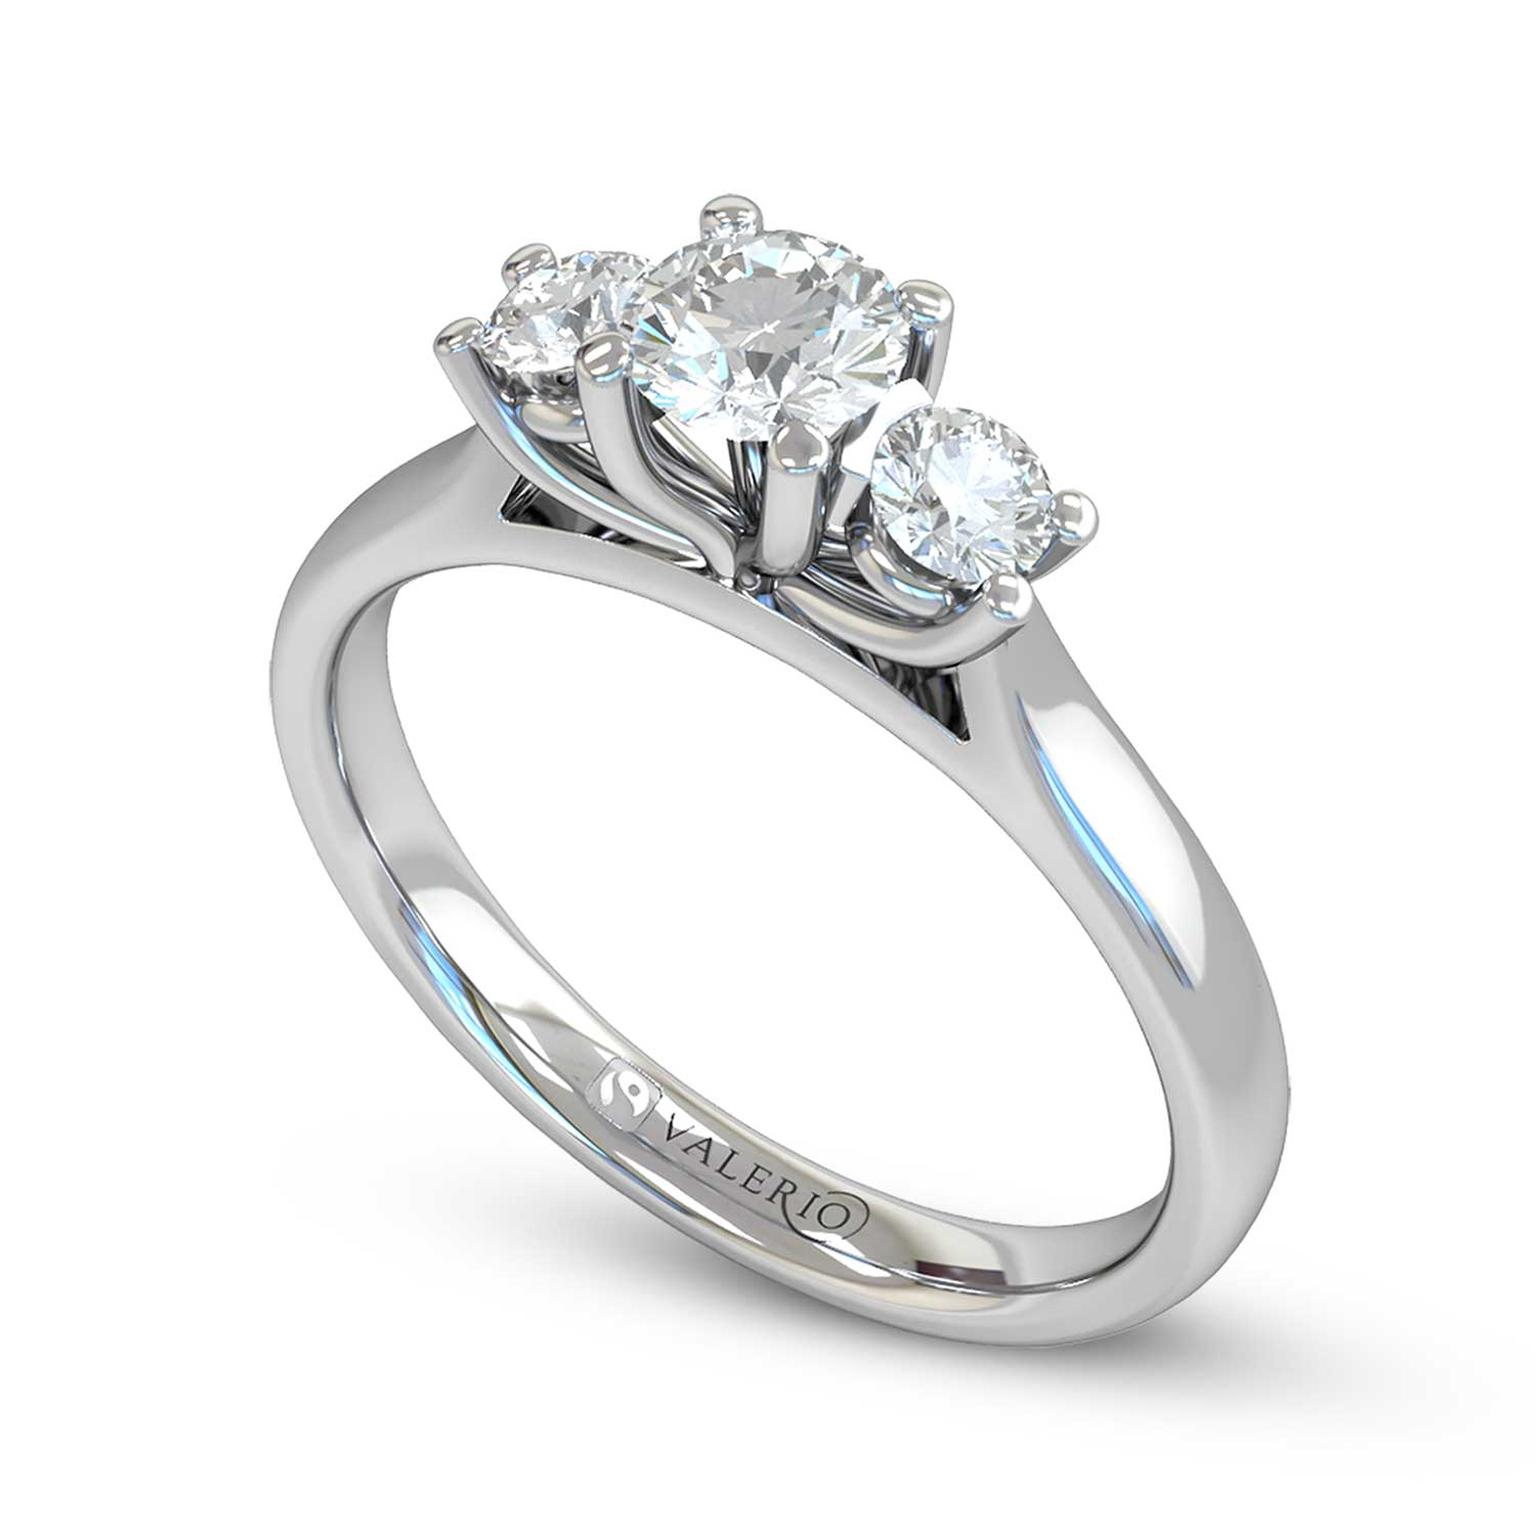 fair are trade budget diamonds diamond size wedding uk rings engagement of what ethical large